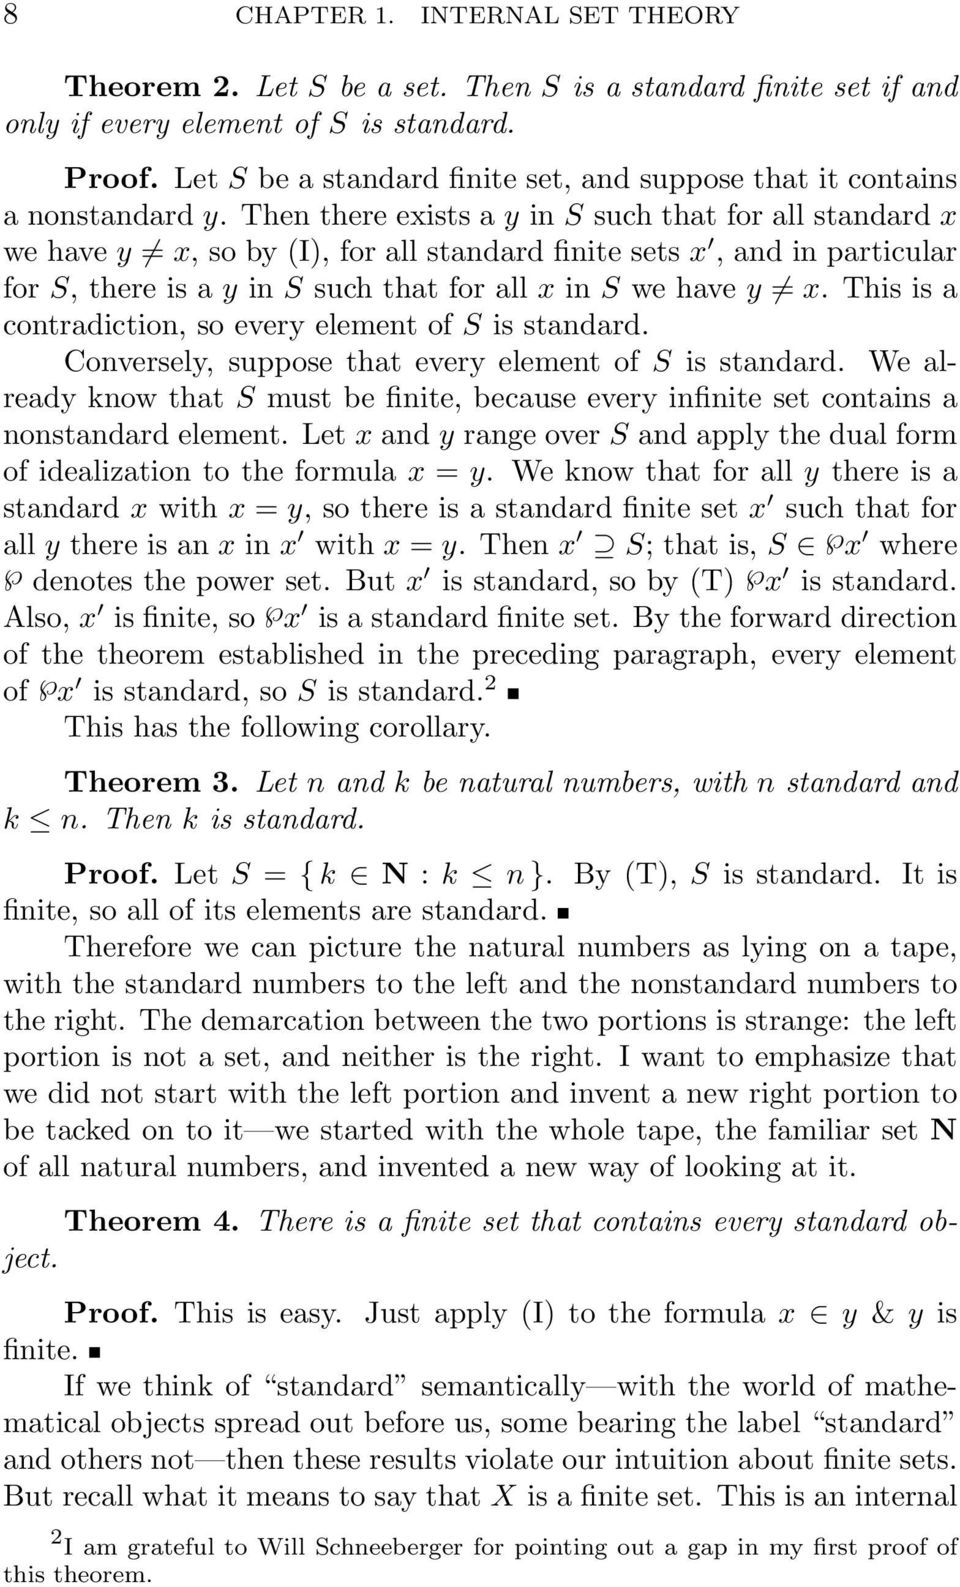 Then there exists a y in S such that for all standard x we have y x, so by (I), for all standard finite sets x, and in particular for S, there is a y in S such that for all x in S we have y x.